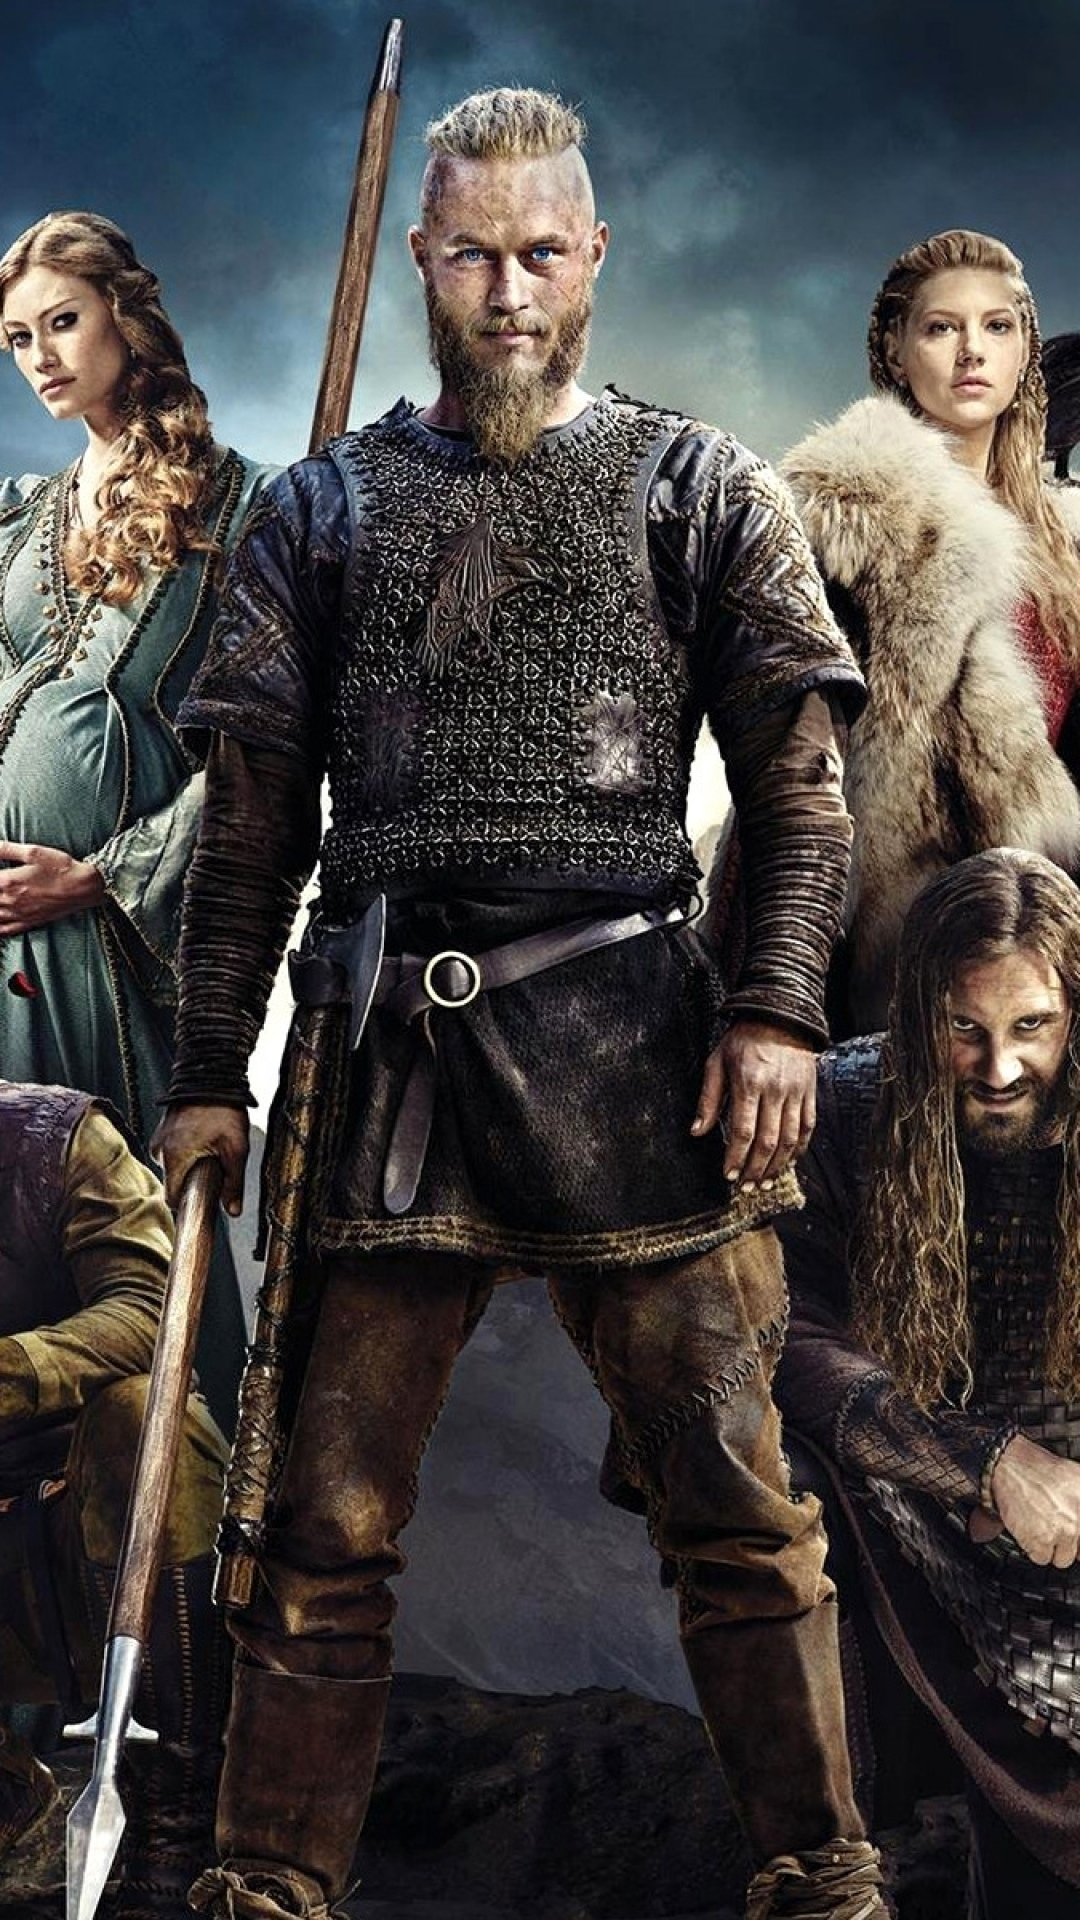 iphone wallpaper vikings travis fimmel clive standen gustaf skarsgard kathryn winnick 3Wallpapers : notre sélection de fonds décran du 01/09/2017